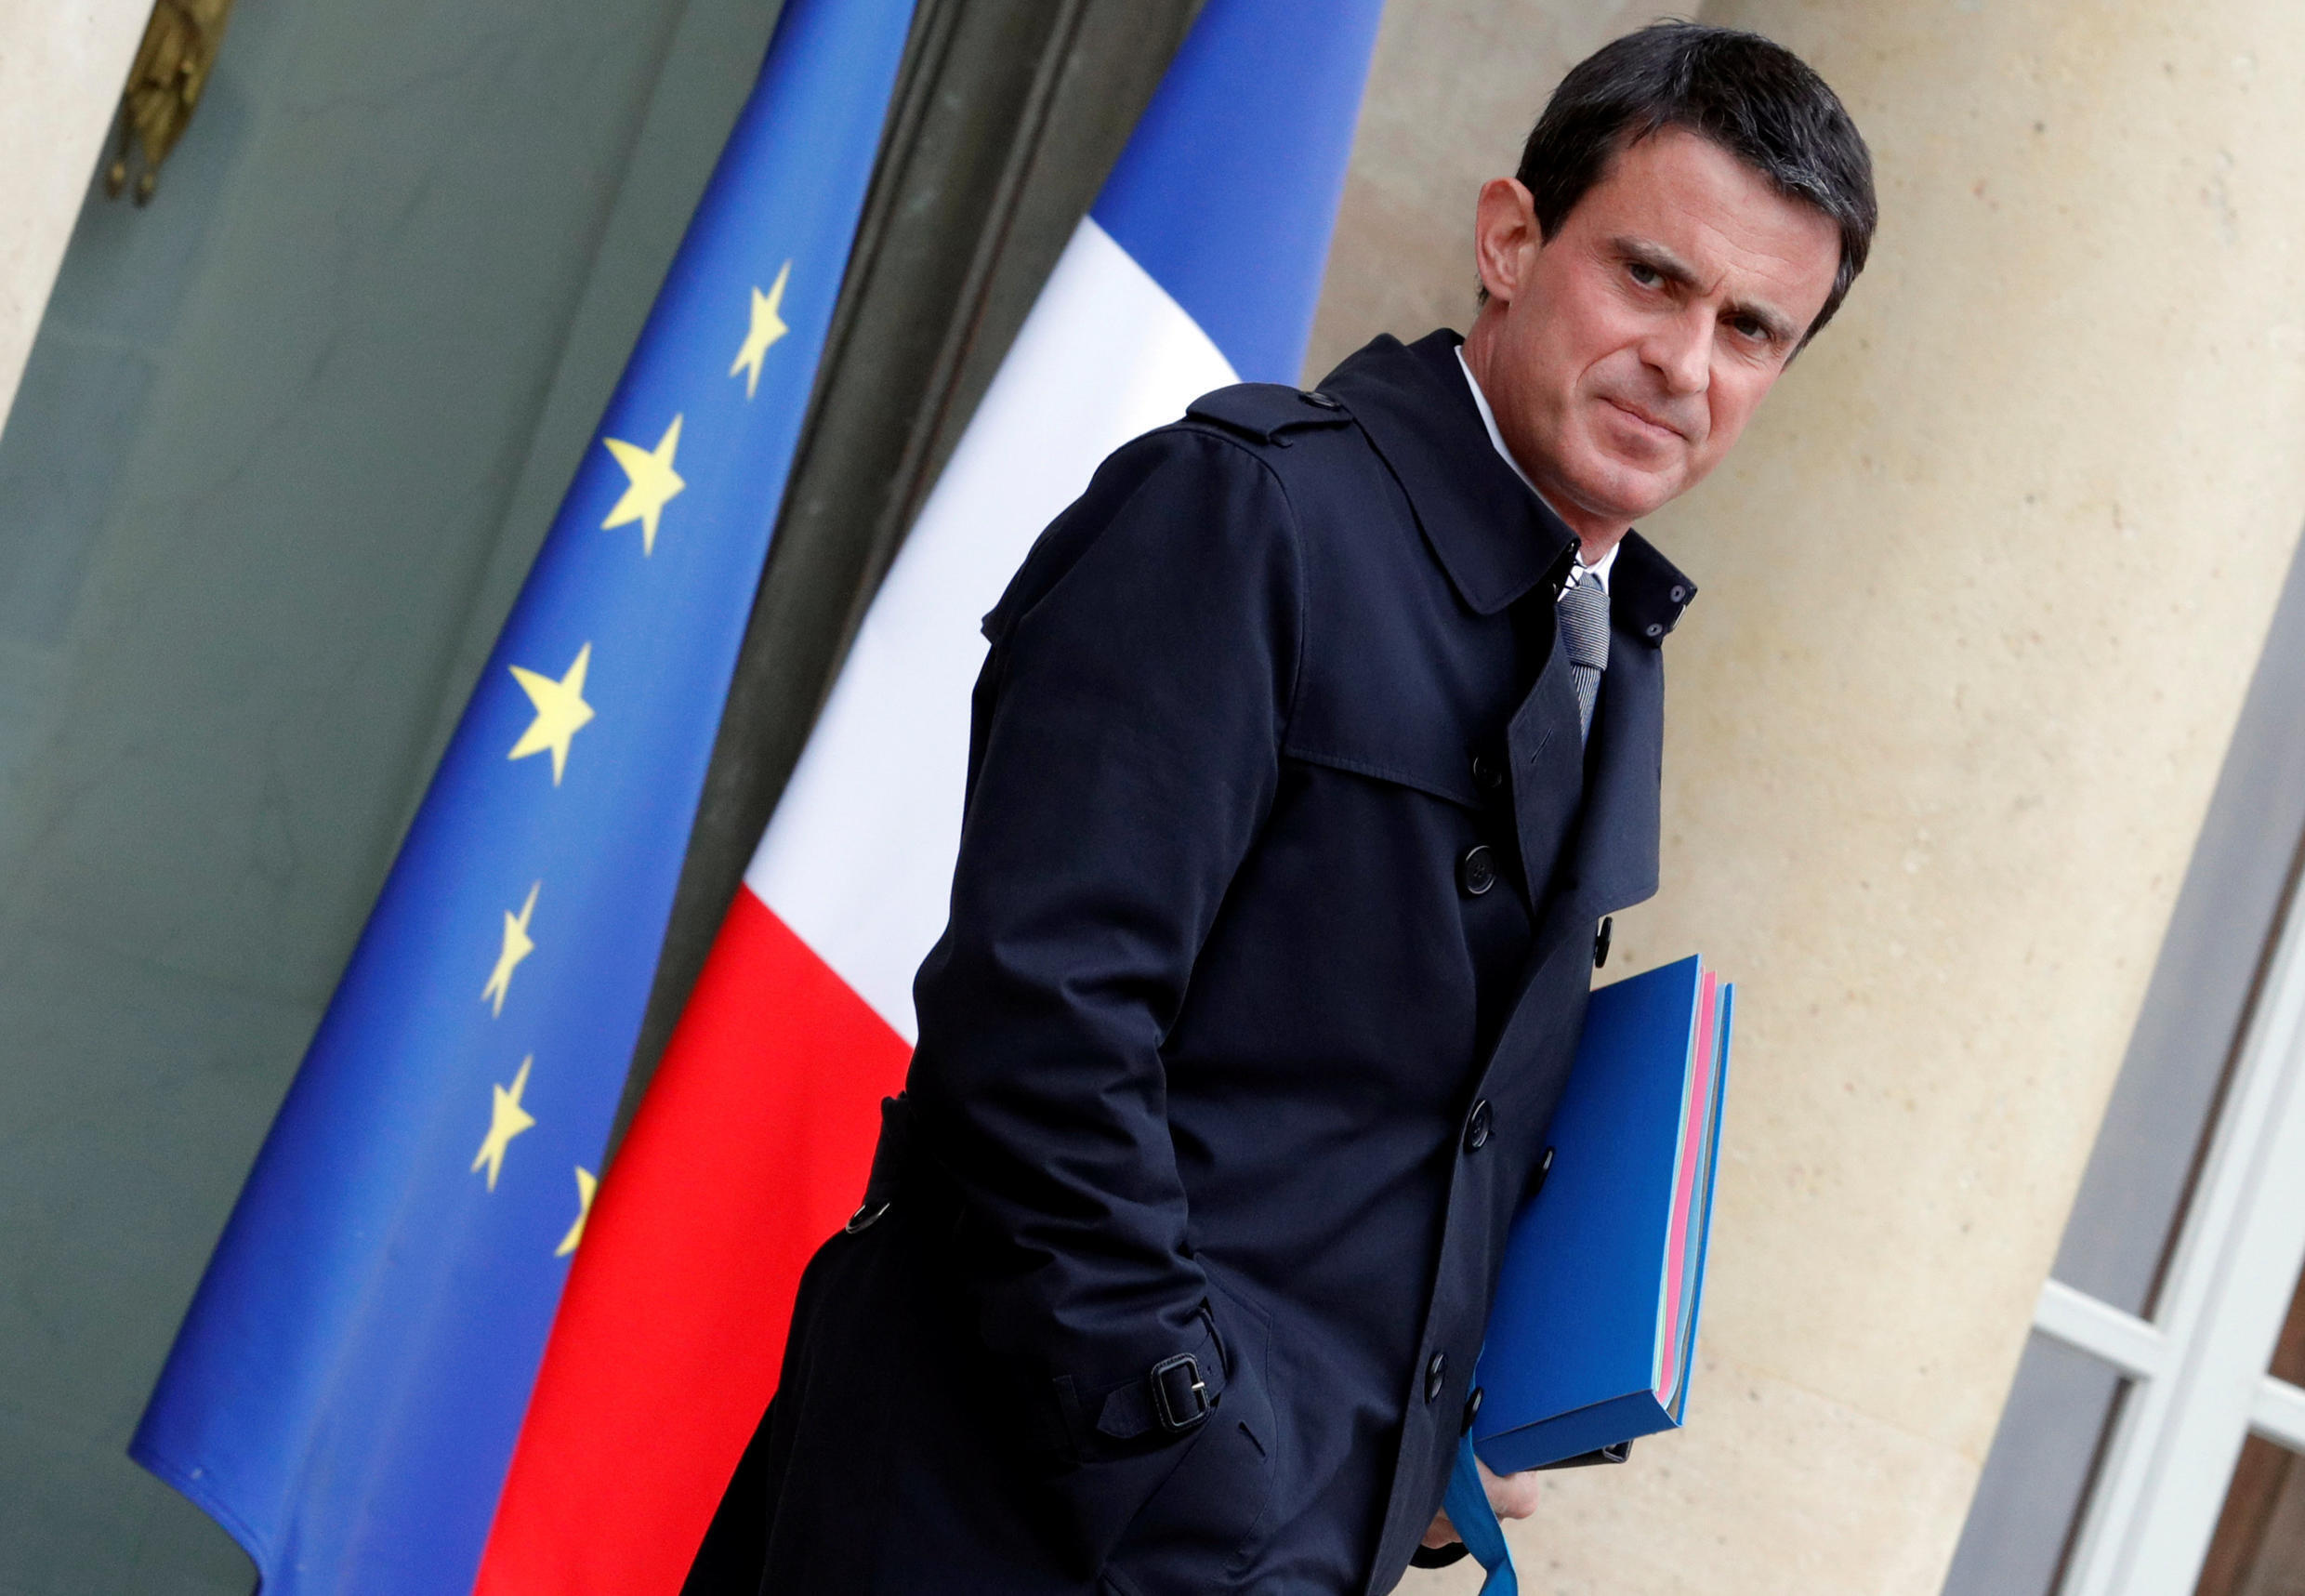 French Prime Minister Manuel Valls leaves the Elysee Palace following the weekly cabinet meeting in Paris, France , June 1, 2016.